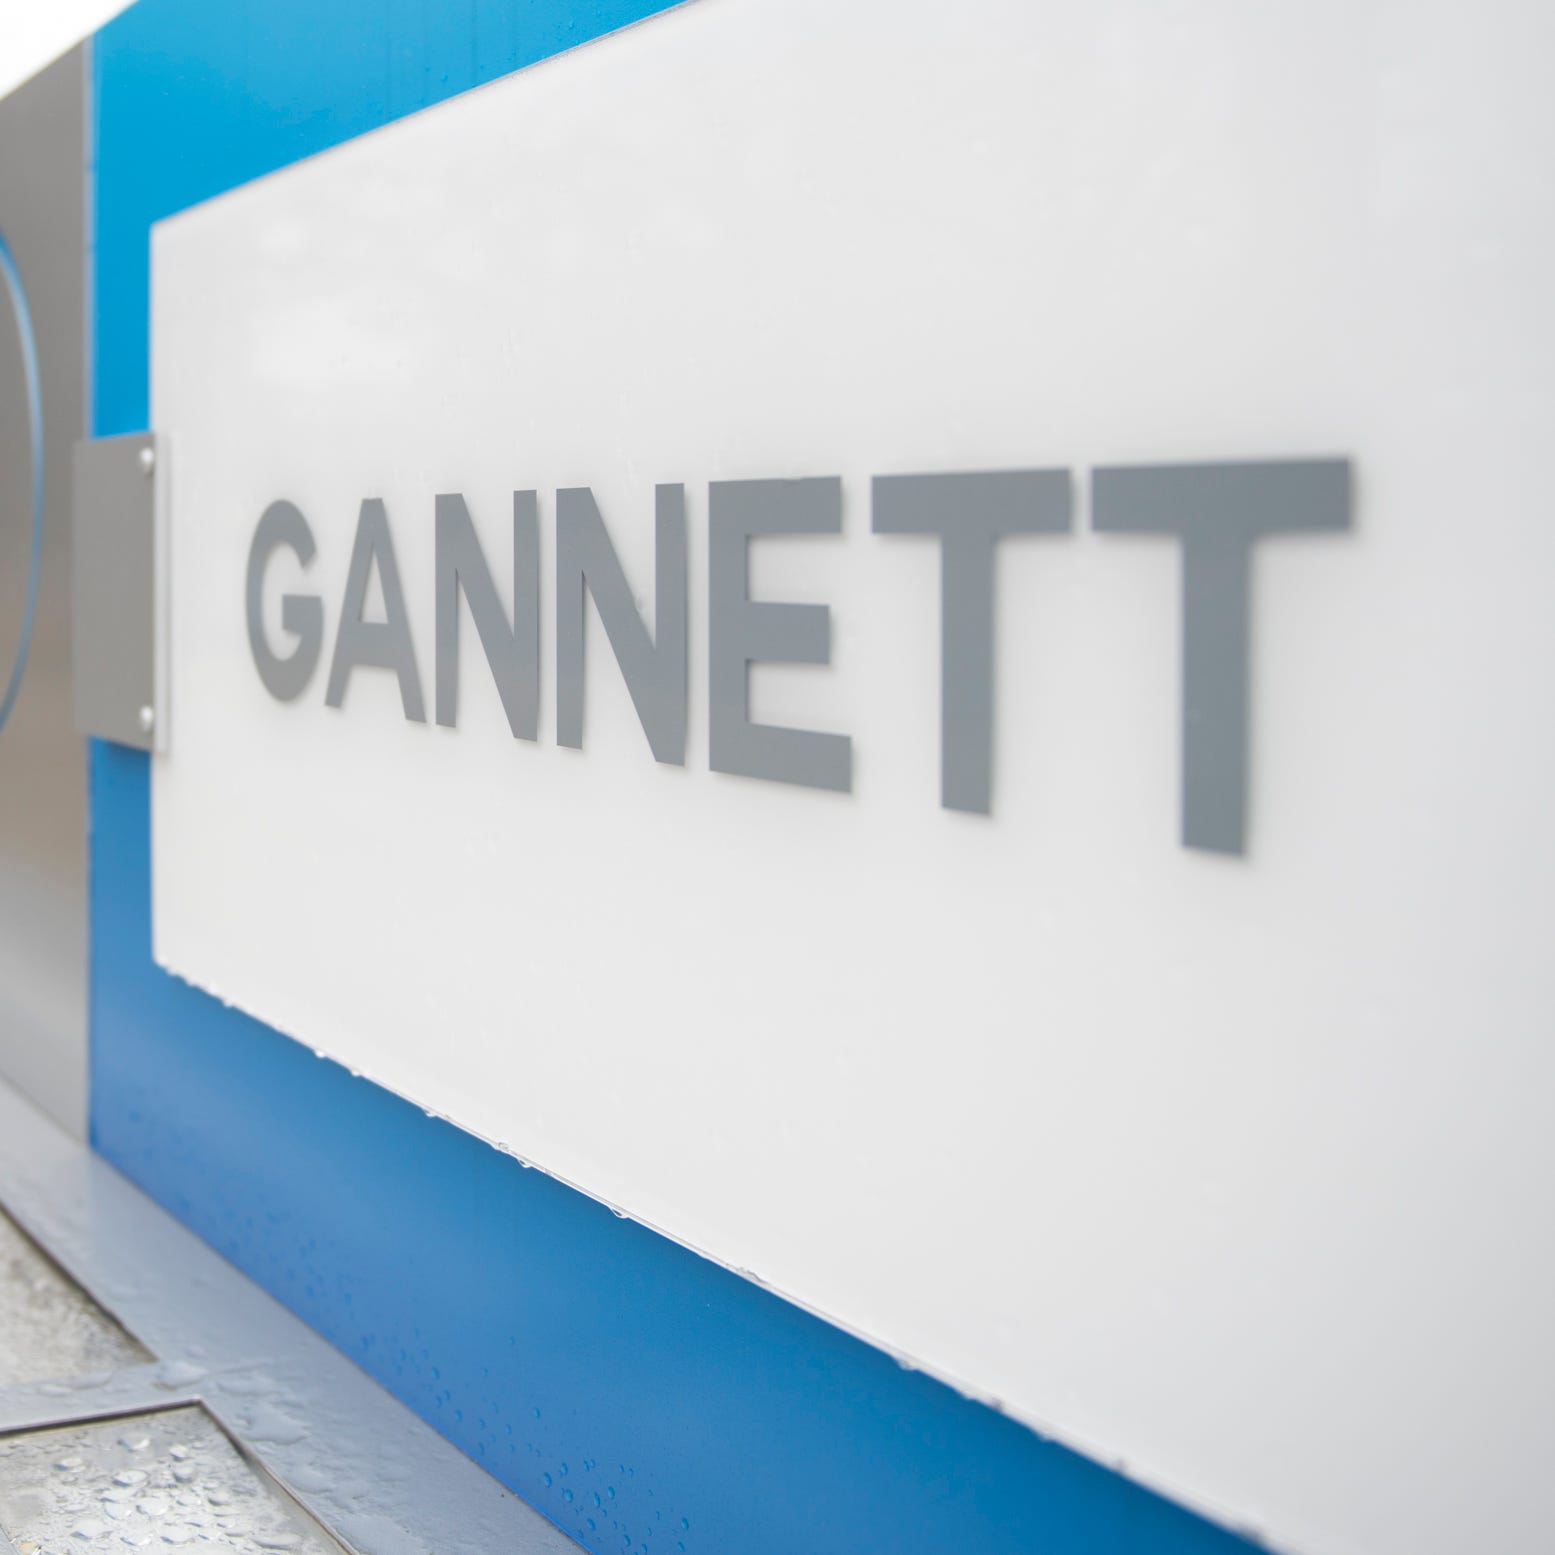 Digital First makes offer to purchase Gannett, Courier Journal's owner